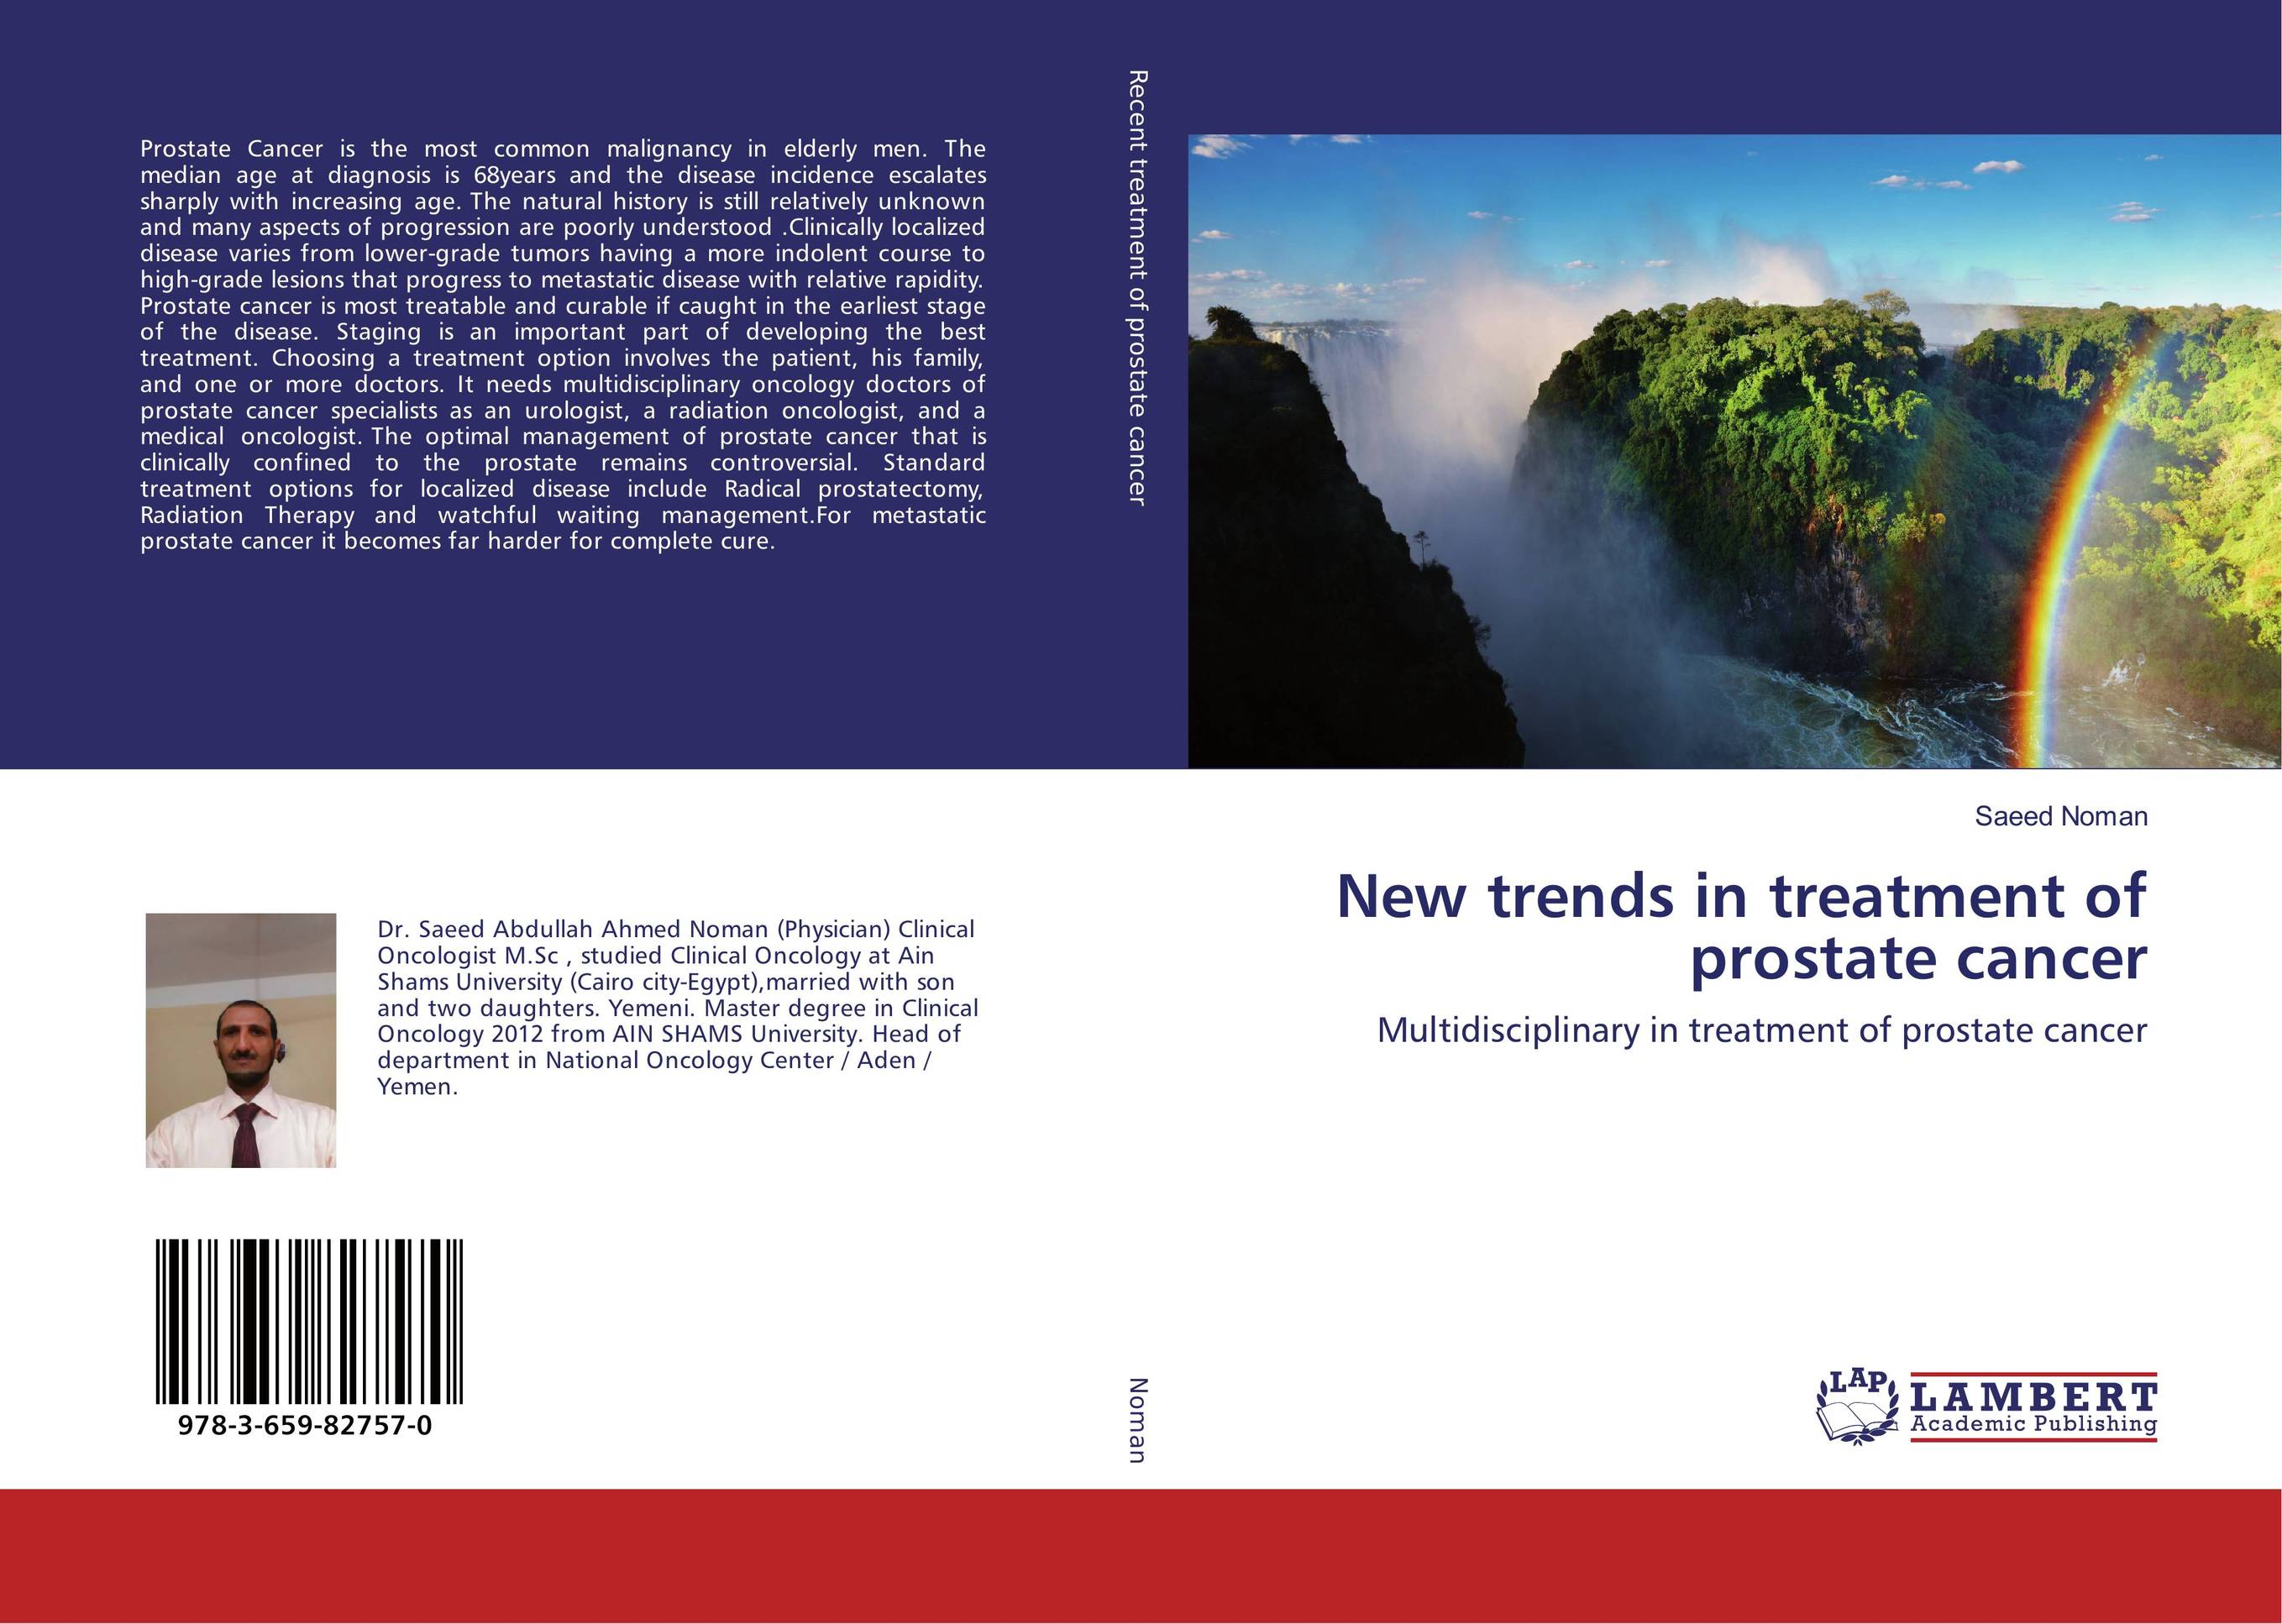 New trends in treatment of prostate cancer late stage diagnosis of cervical cancer